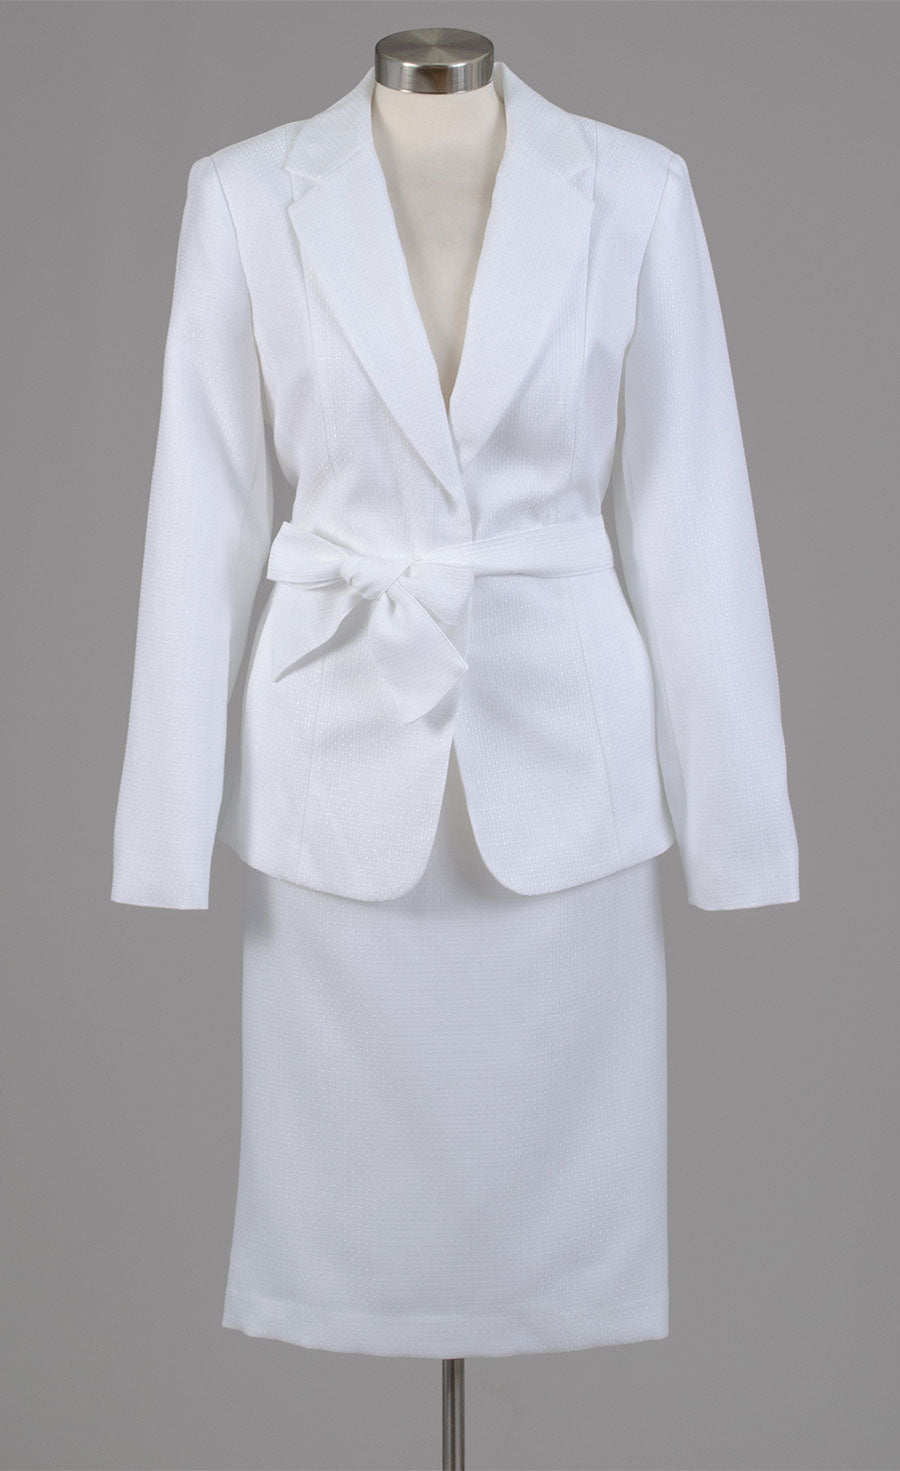 John Meyer Skirt Suit 758C797 - Church Suits For Less